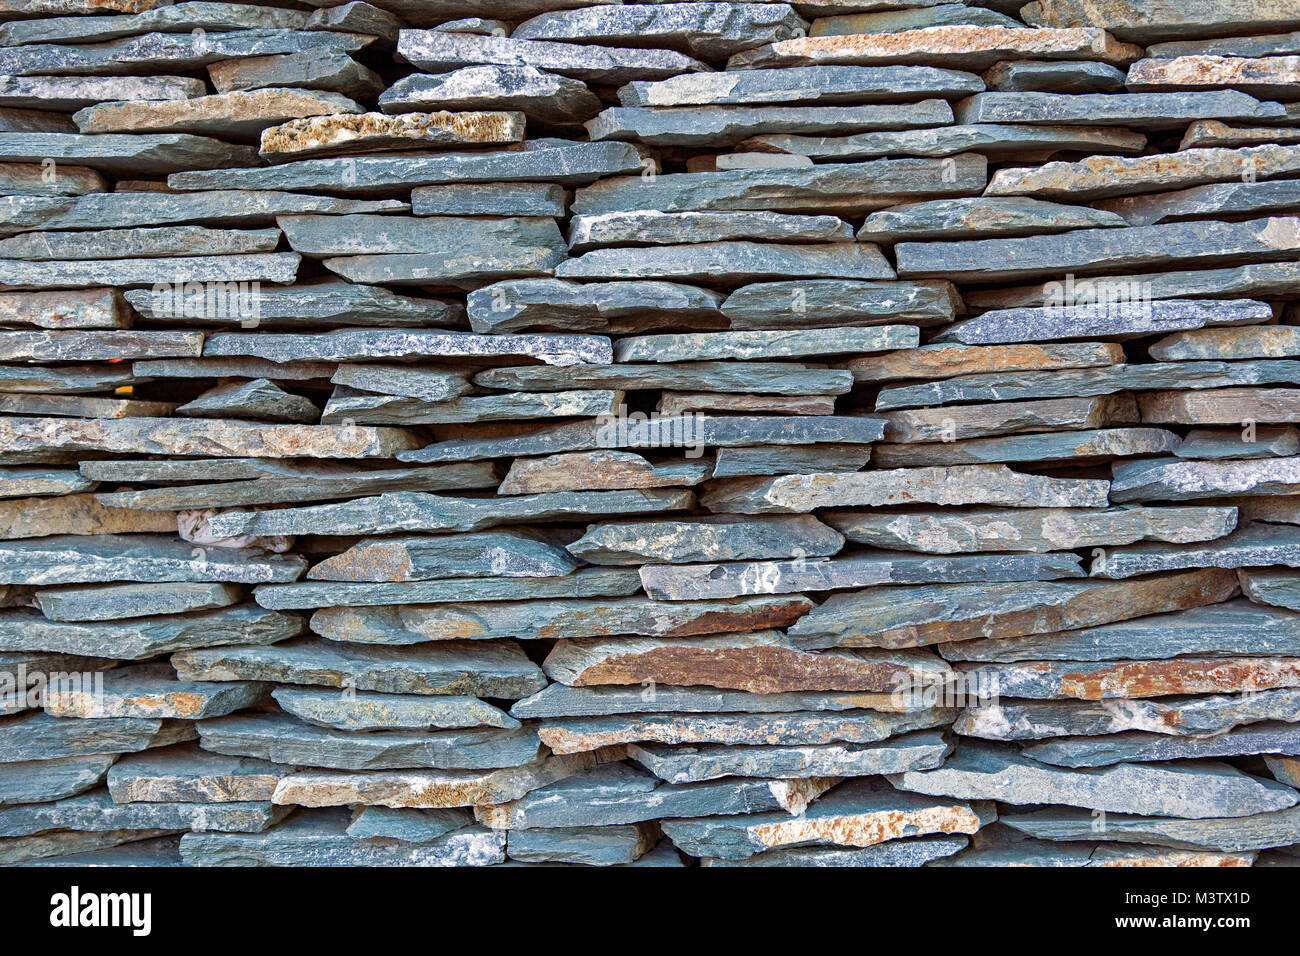 Wall built of dry laid bluestone, a common building and architectural matierial. - Stock Image